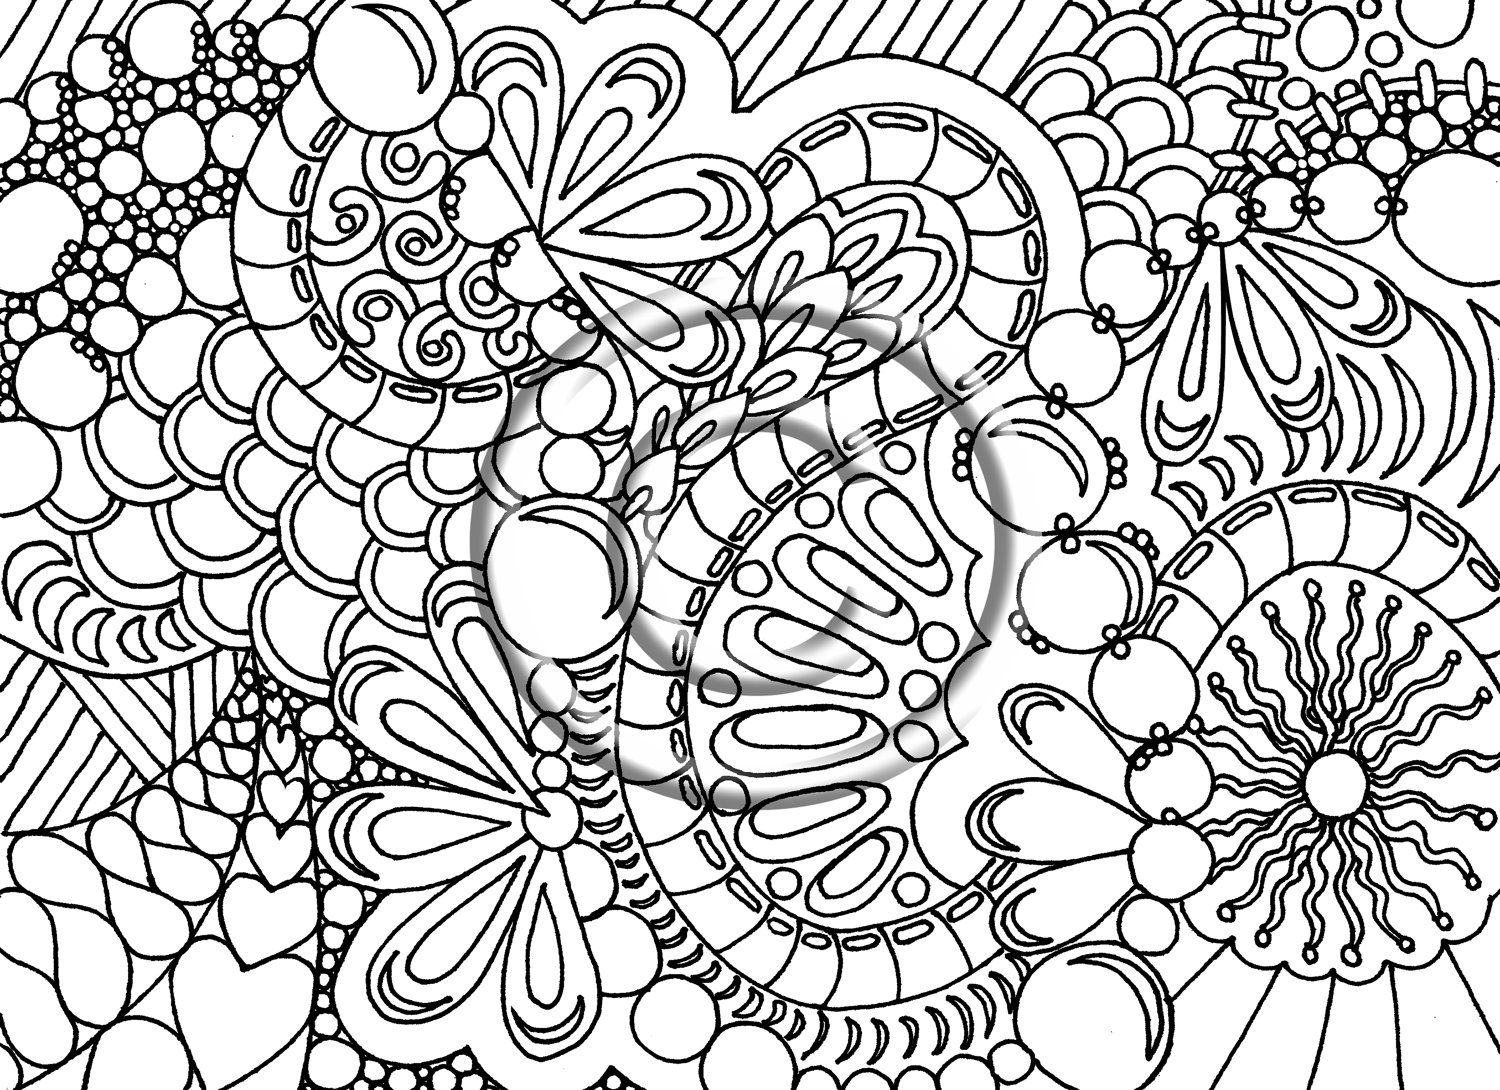 Gallery Abstract Coloring Pages Difficult Adult Coloring Pages